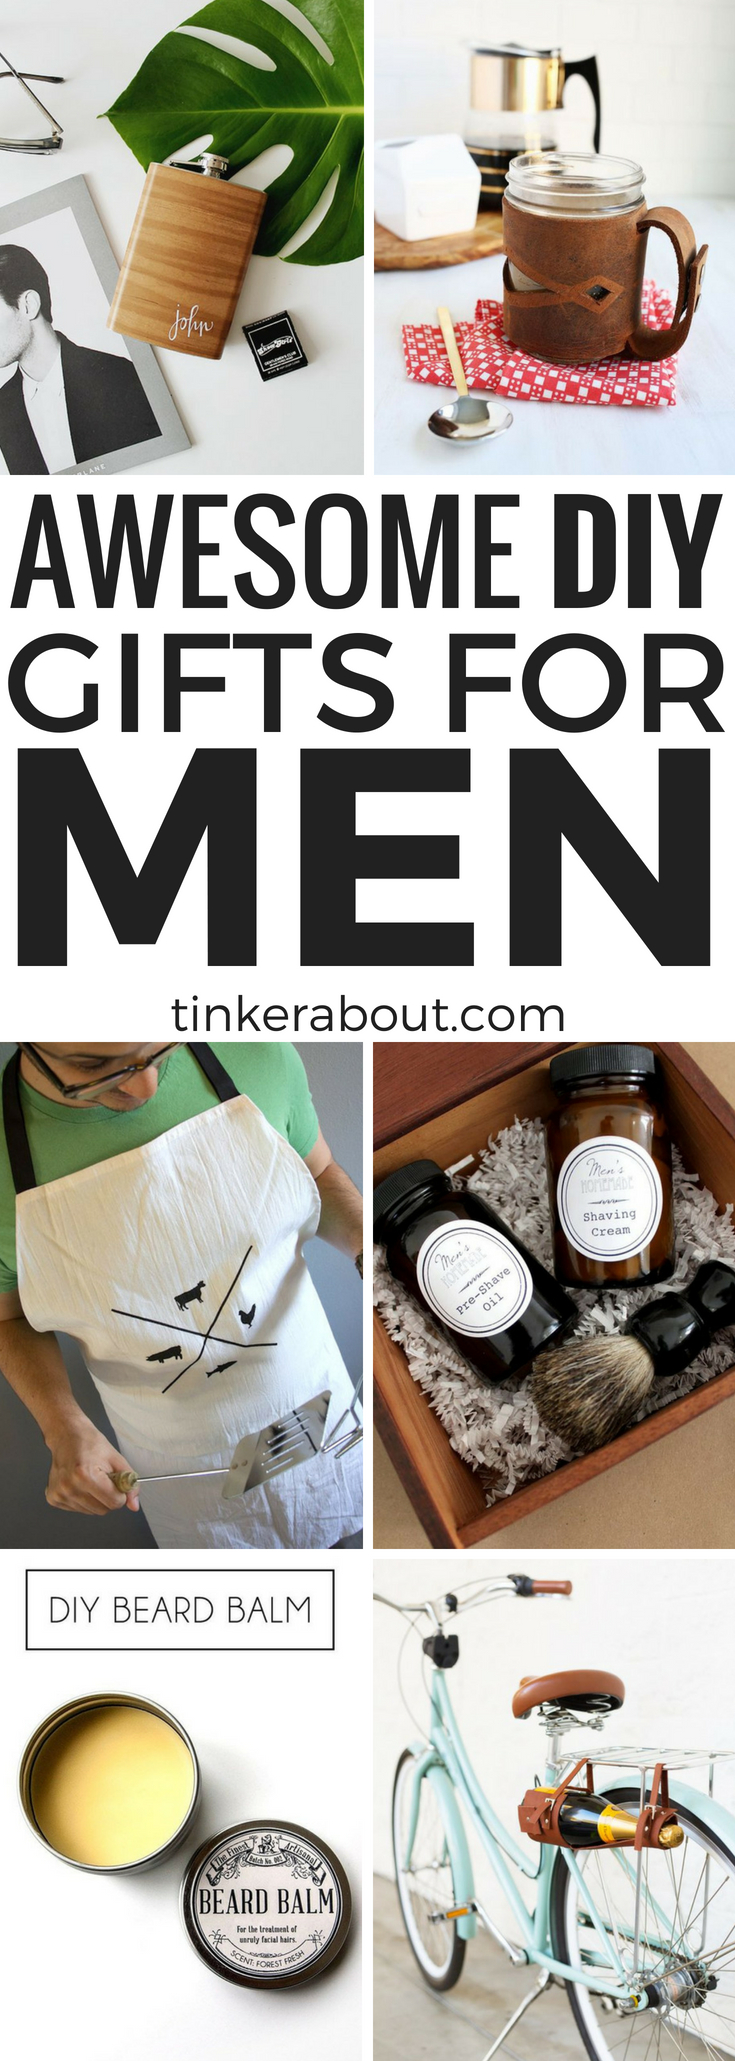 21 Modern Manly Gifts For Boyfriends Perfect For Birthdays Best Boyfriend Gifts Birthday Gifts For Husband Creative Birthday Gifts